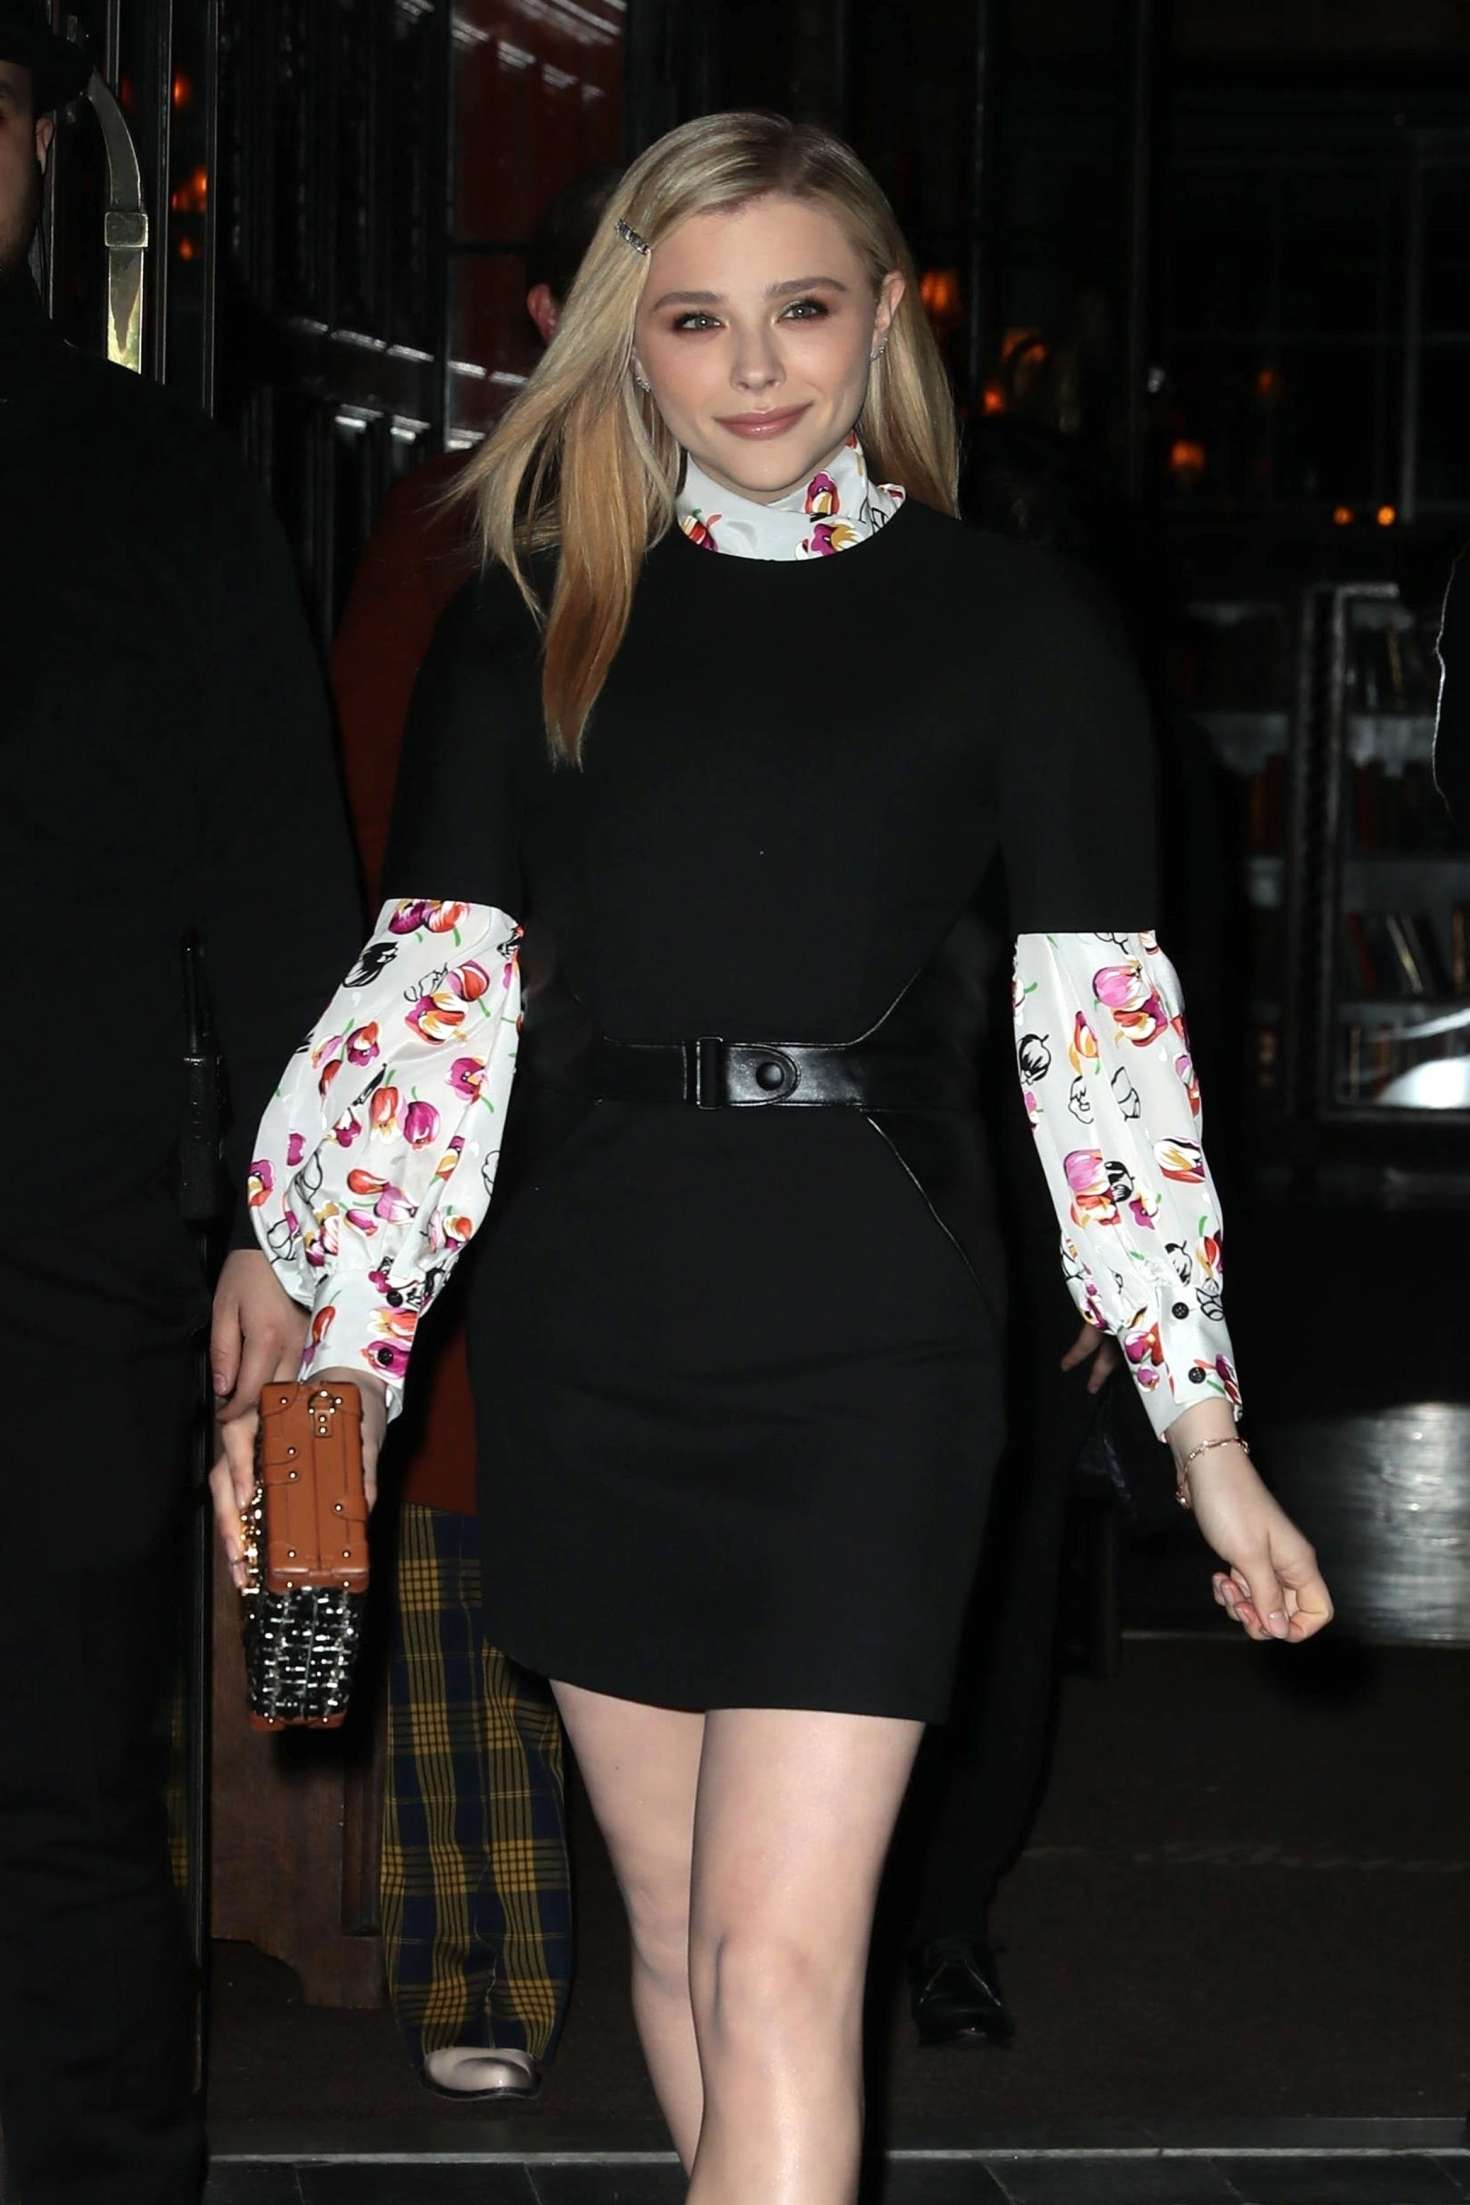 Chloe Moretz - Leaving the Bowery Hotel in New York